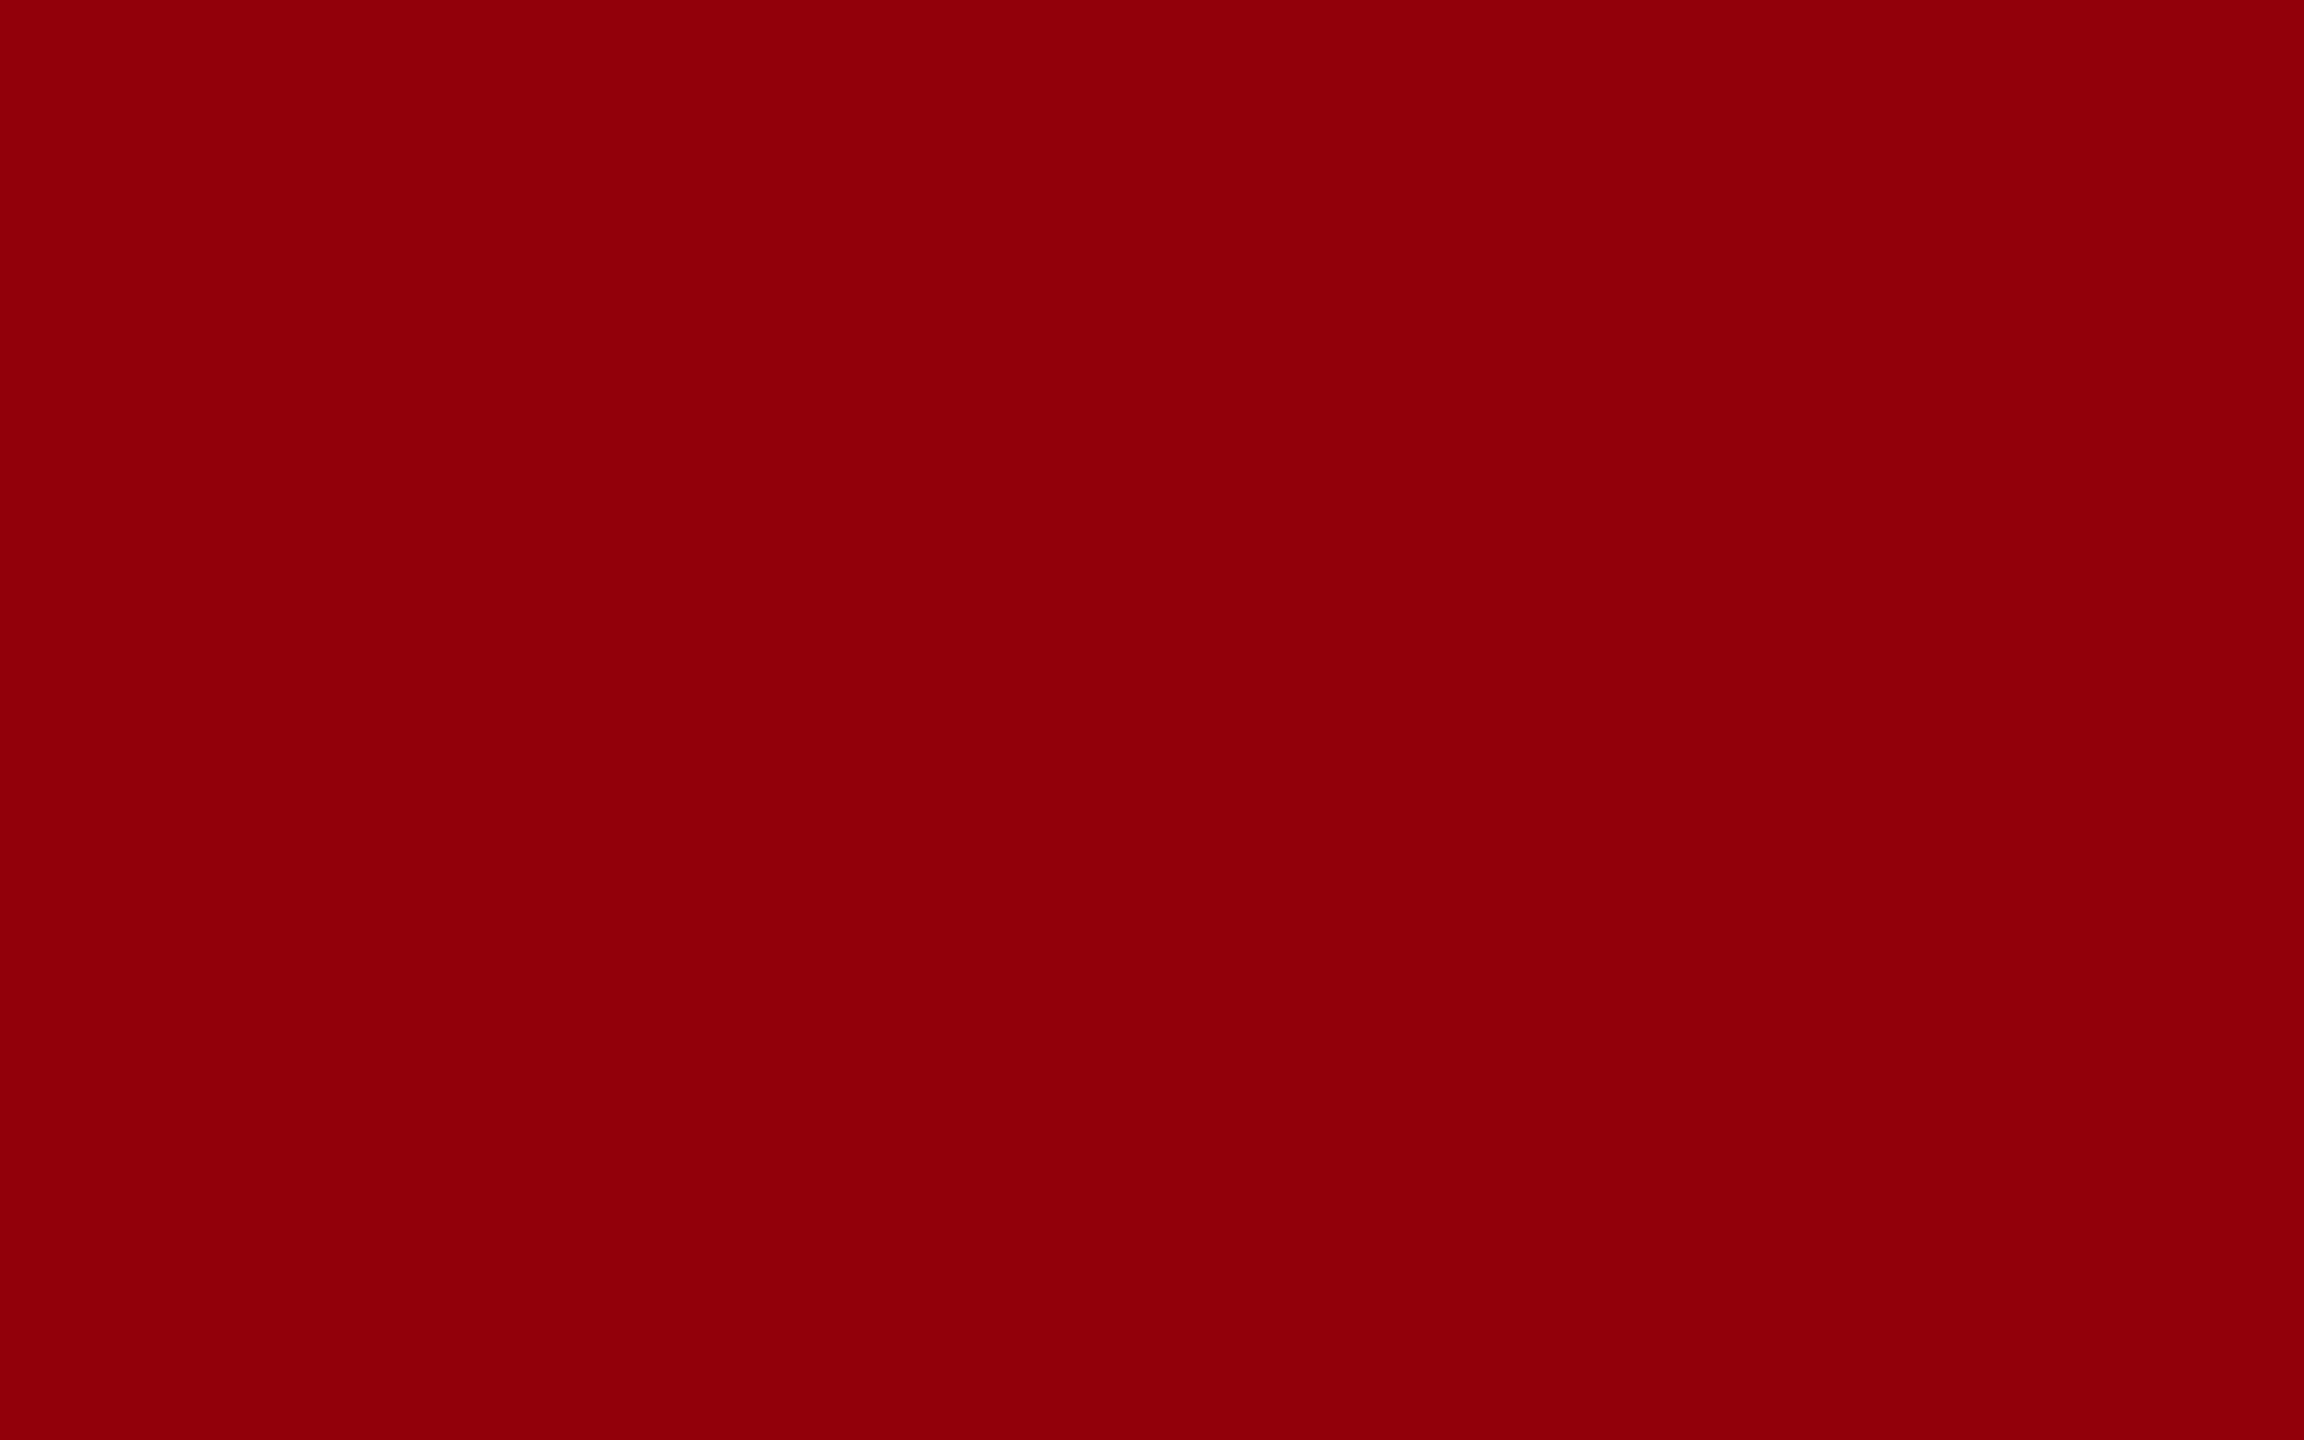 2304x1440 Sangria Solid Color Background